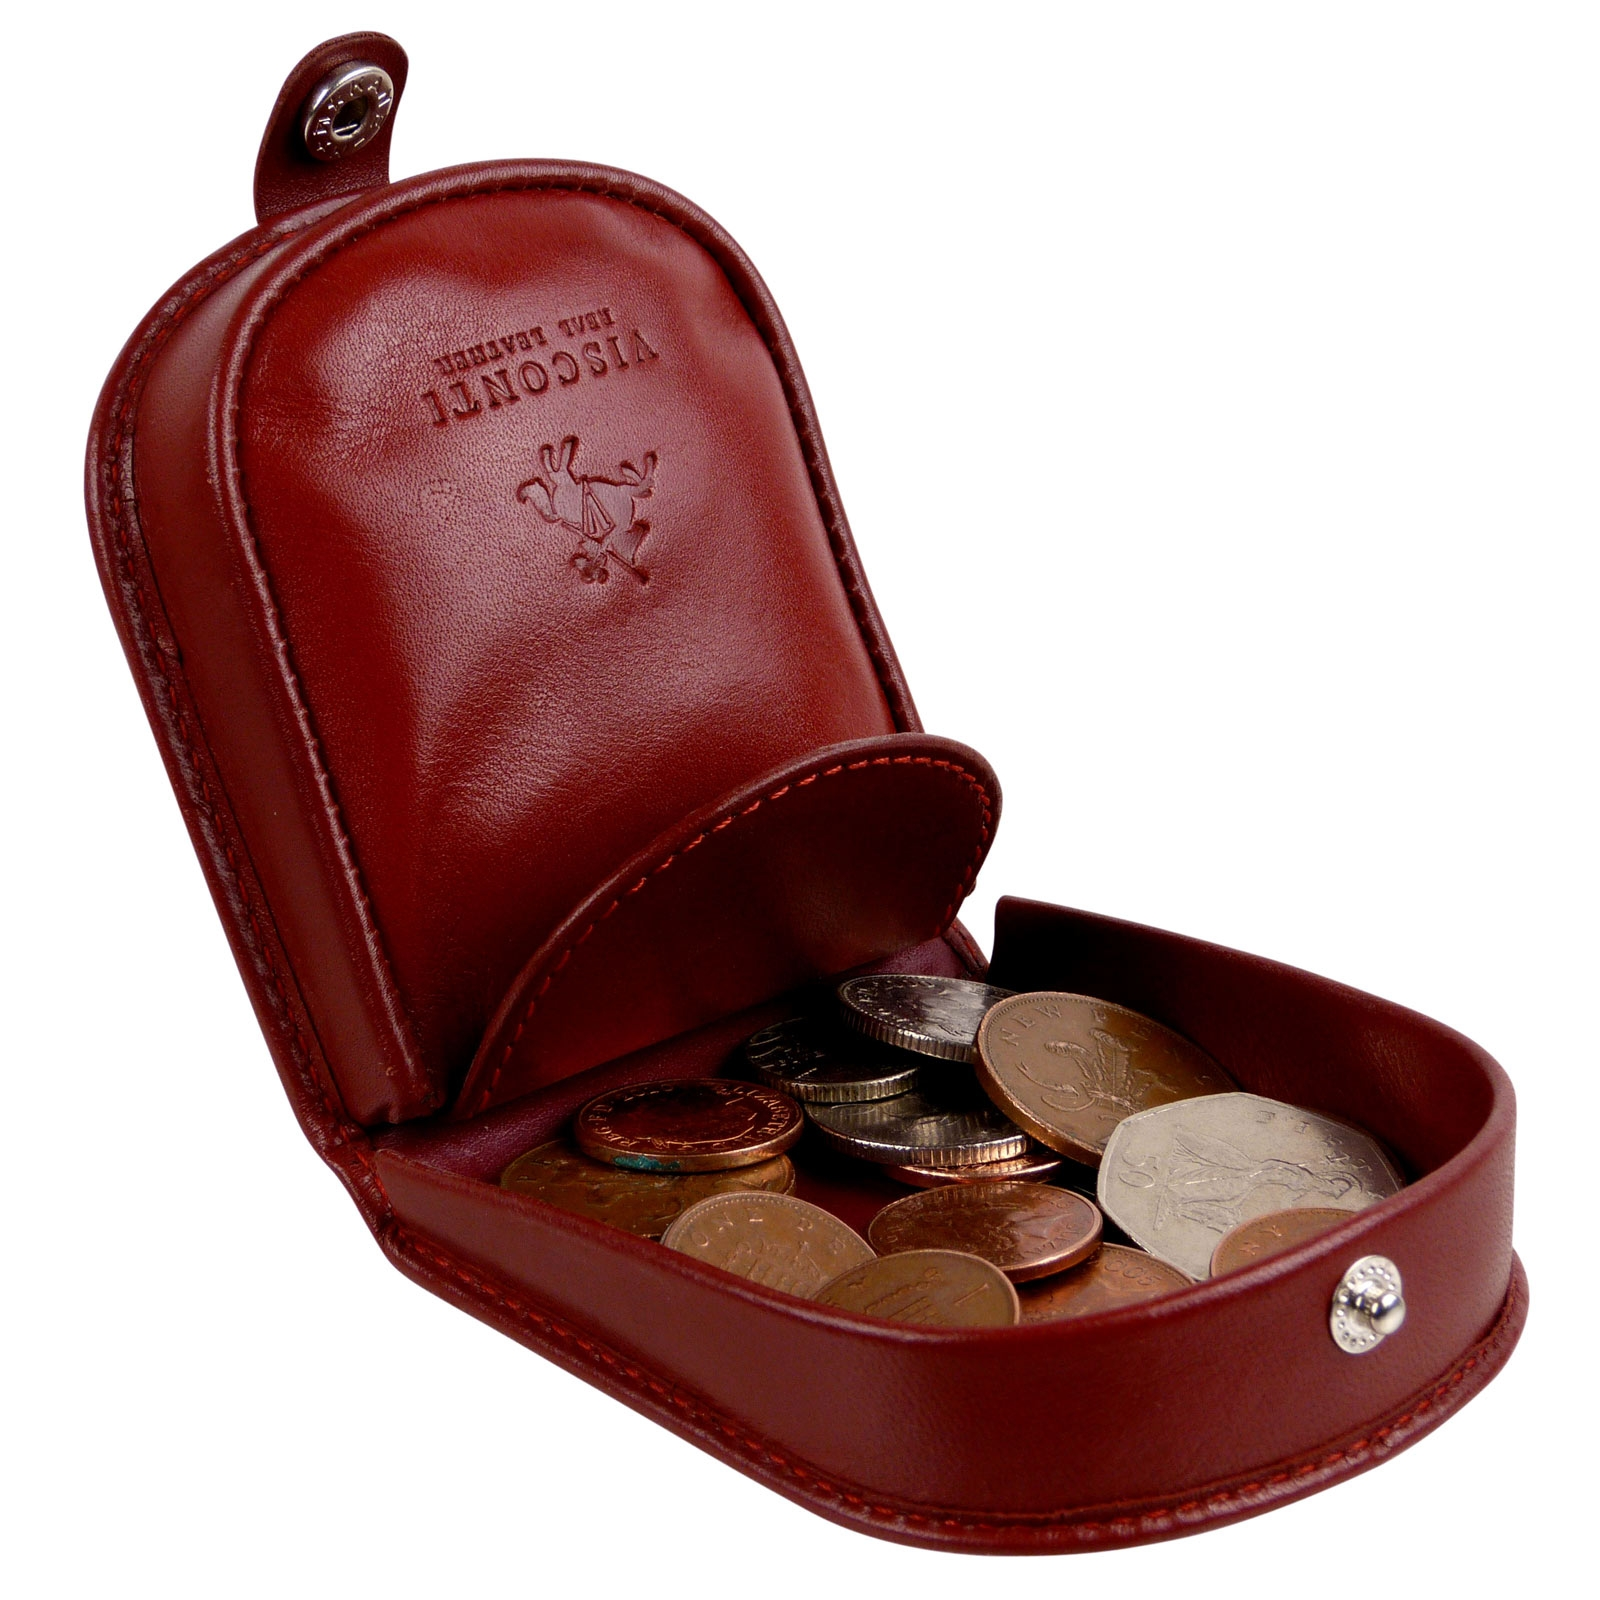 thumbnail 5 - Mens-Classic-Leather-Tabbed-Coin-Tray-by-Visconti-Monza-Collection-Gift-Boxed